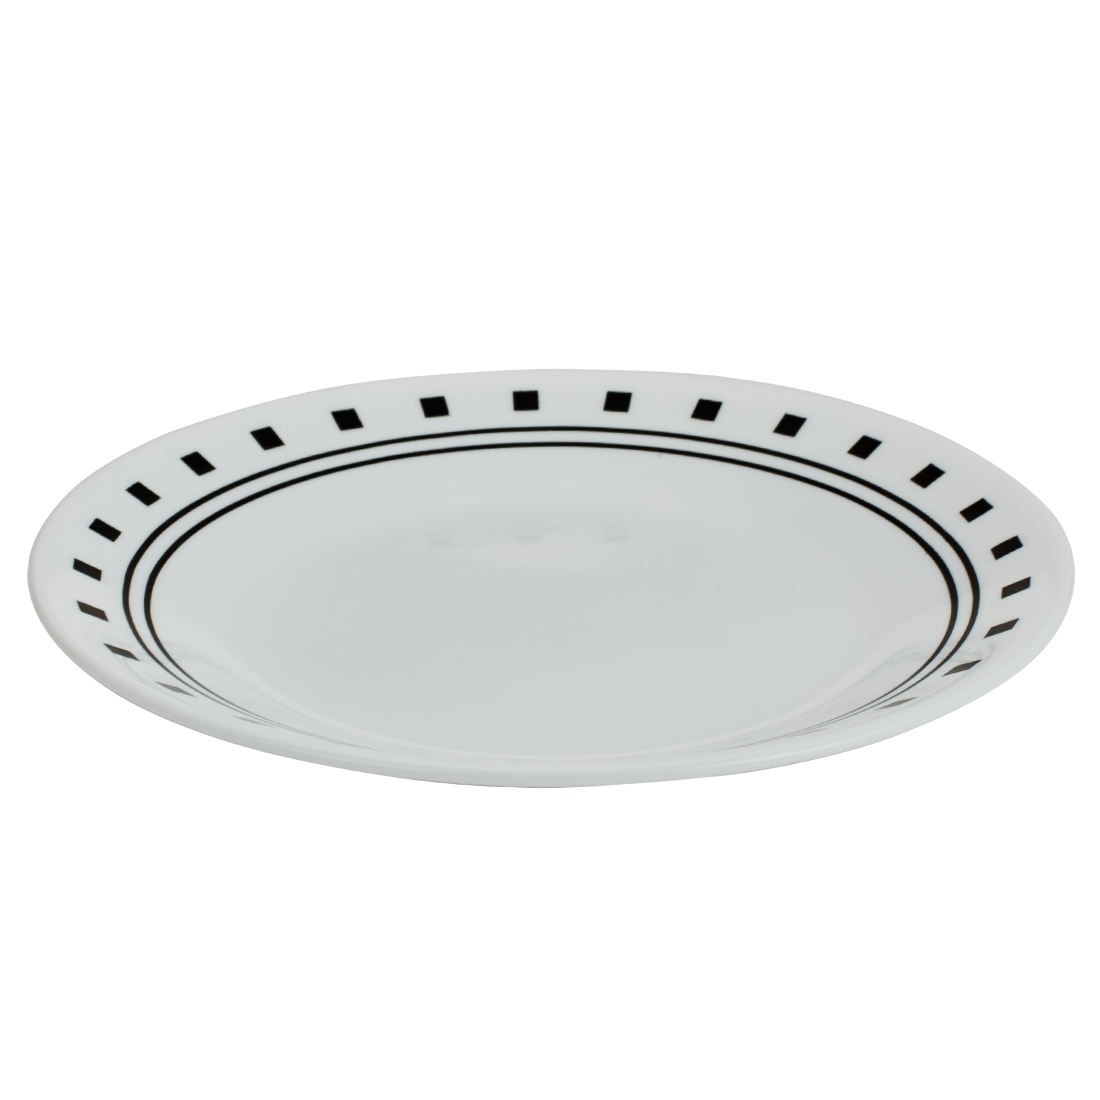 Corelle Small Plate City Vitrelle Plates in White Colour by Corelle